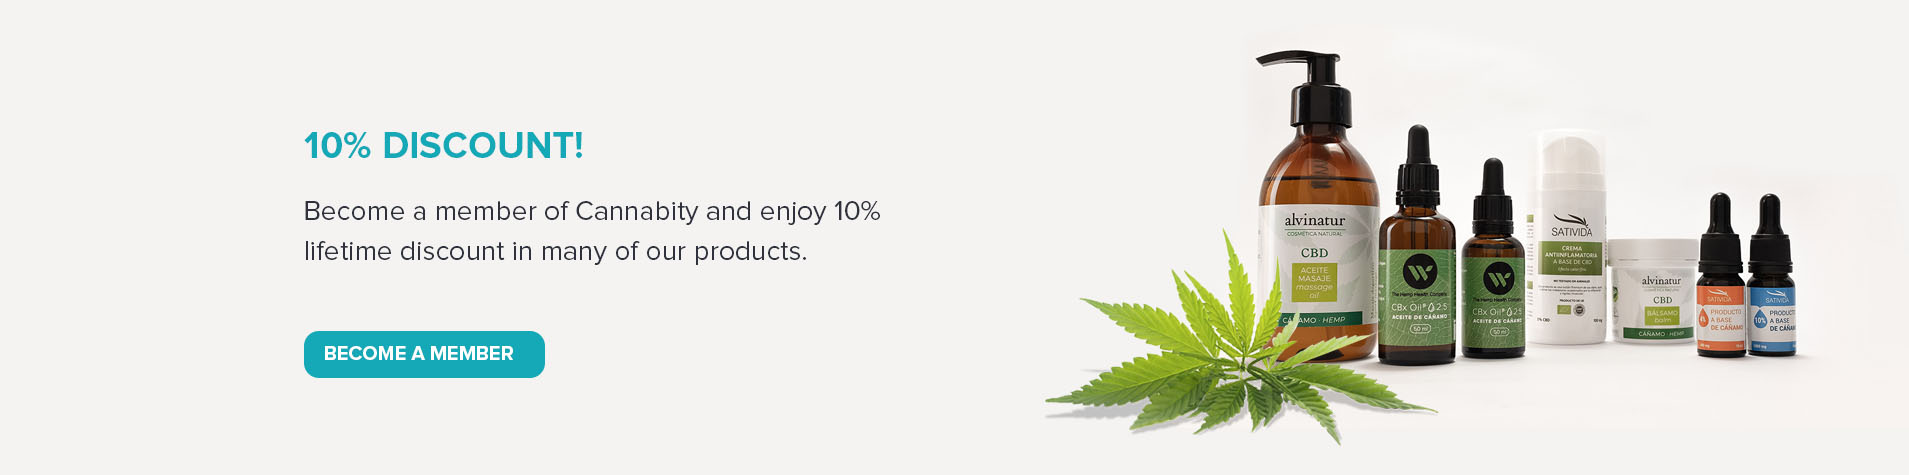 banner 10% discount for members cannabity healthcare